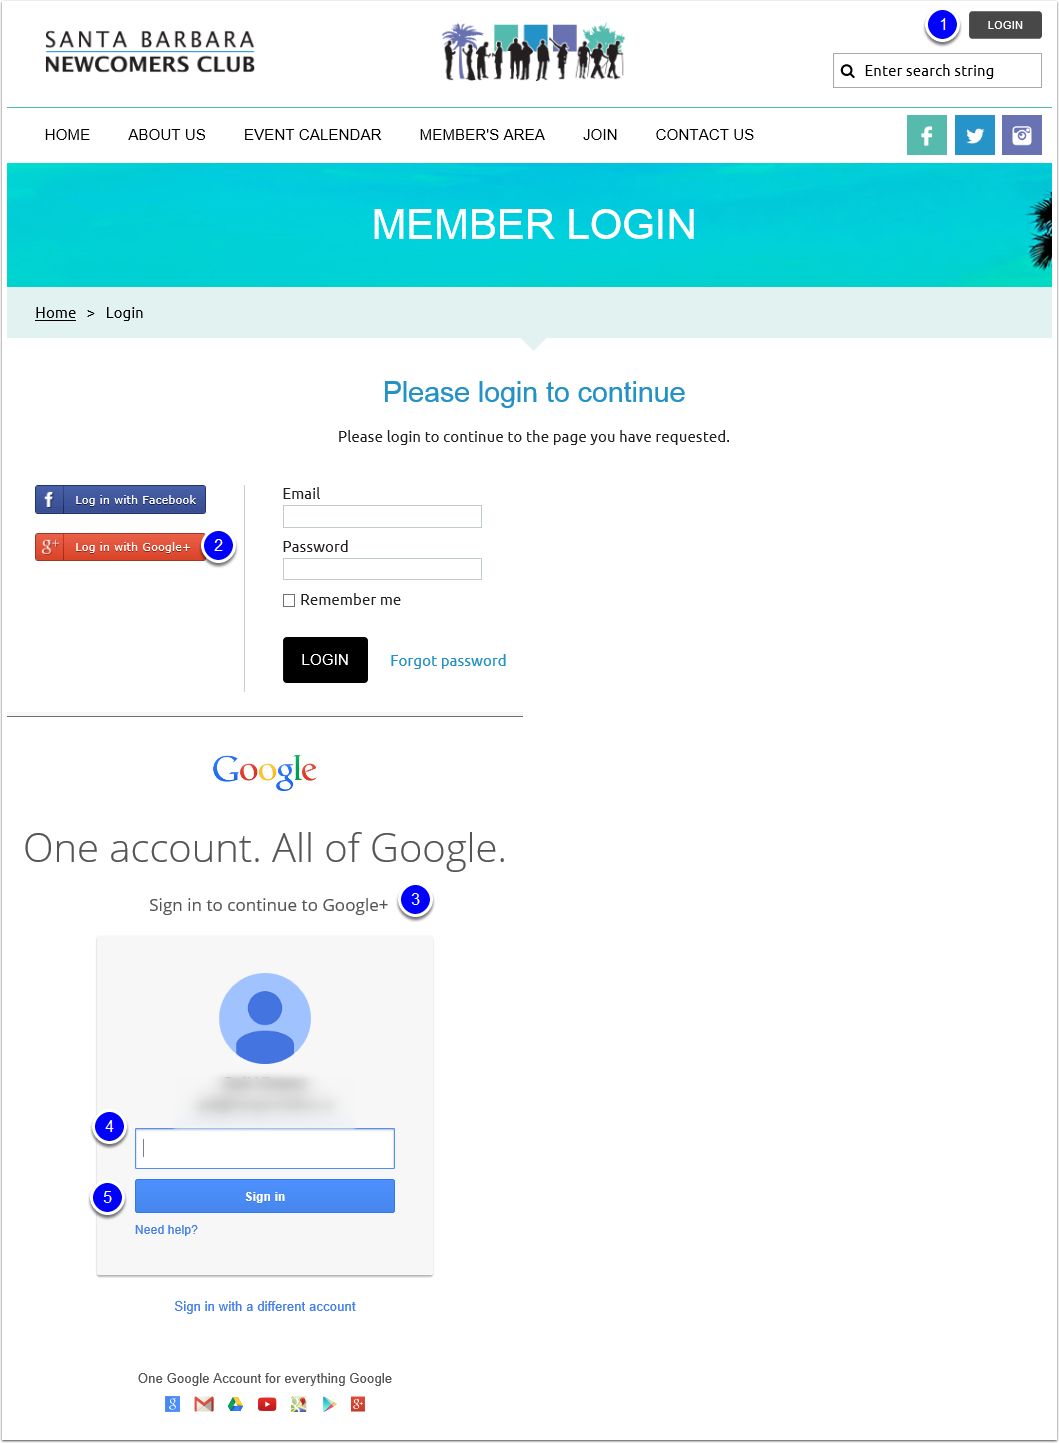 Log in to the SBNC Website Using Your Google+ Credentials